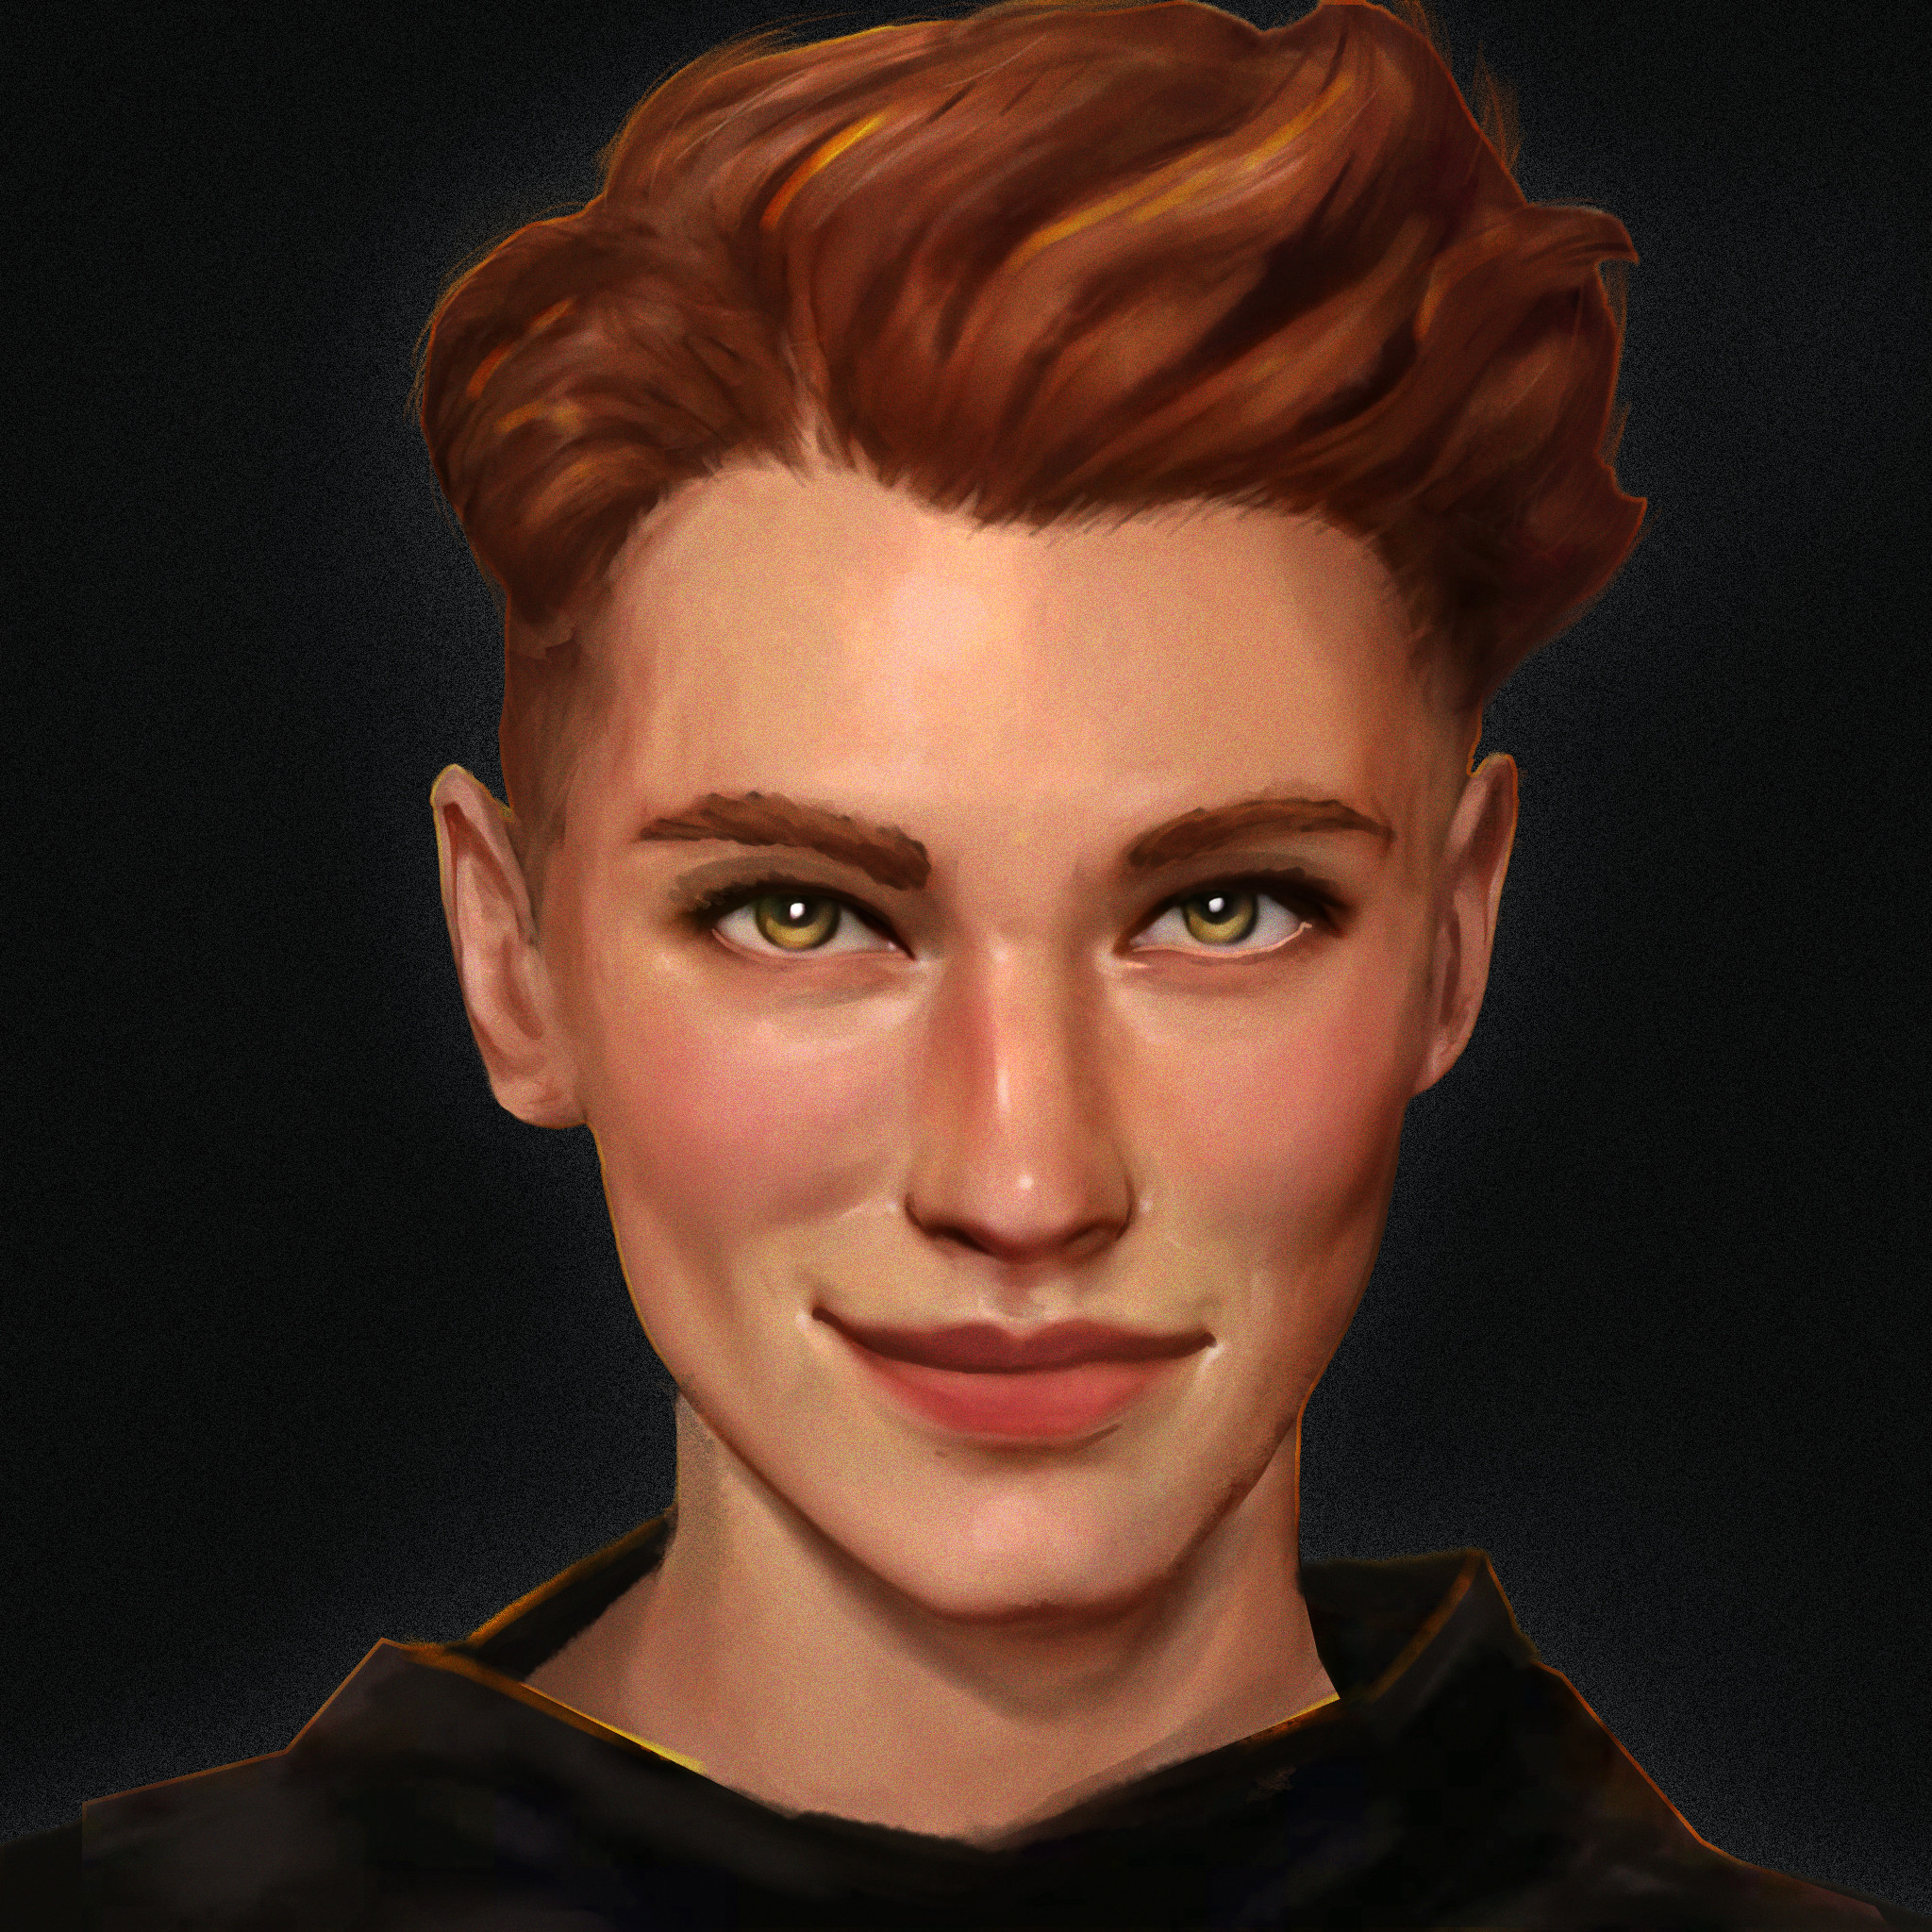 Gideon without face paint